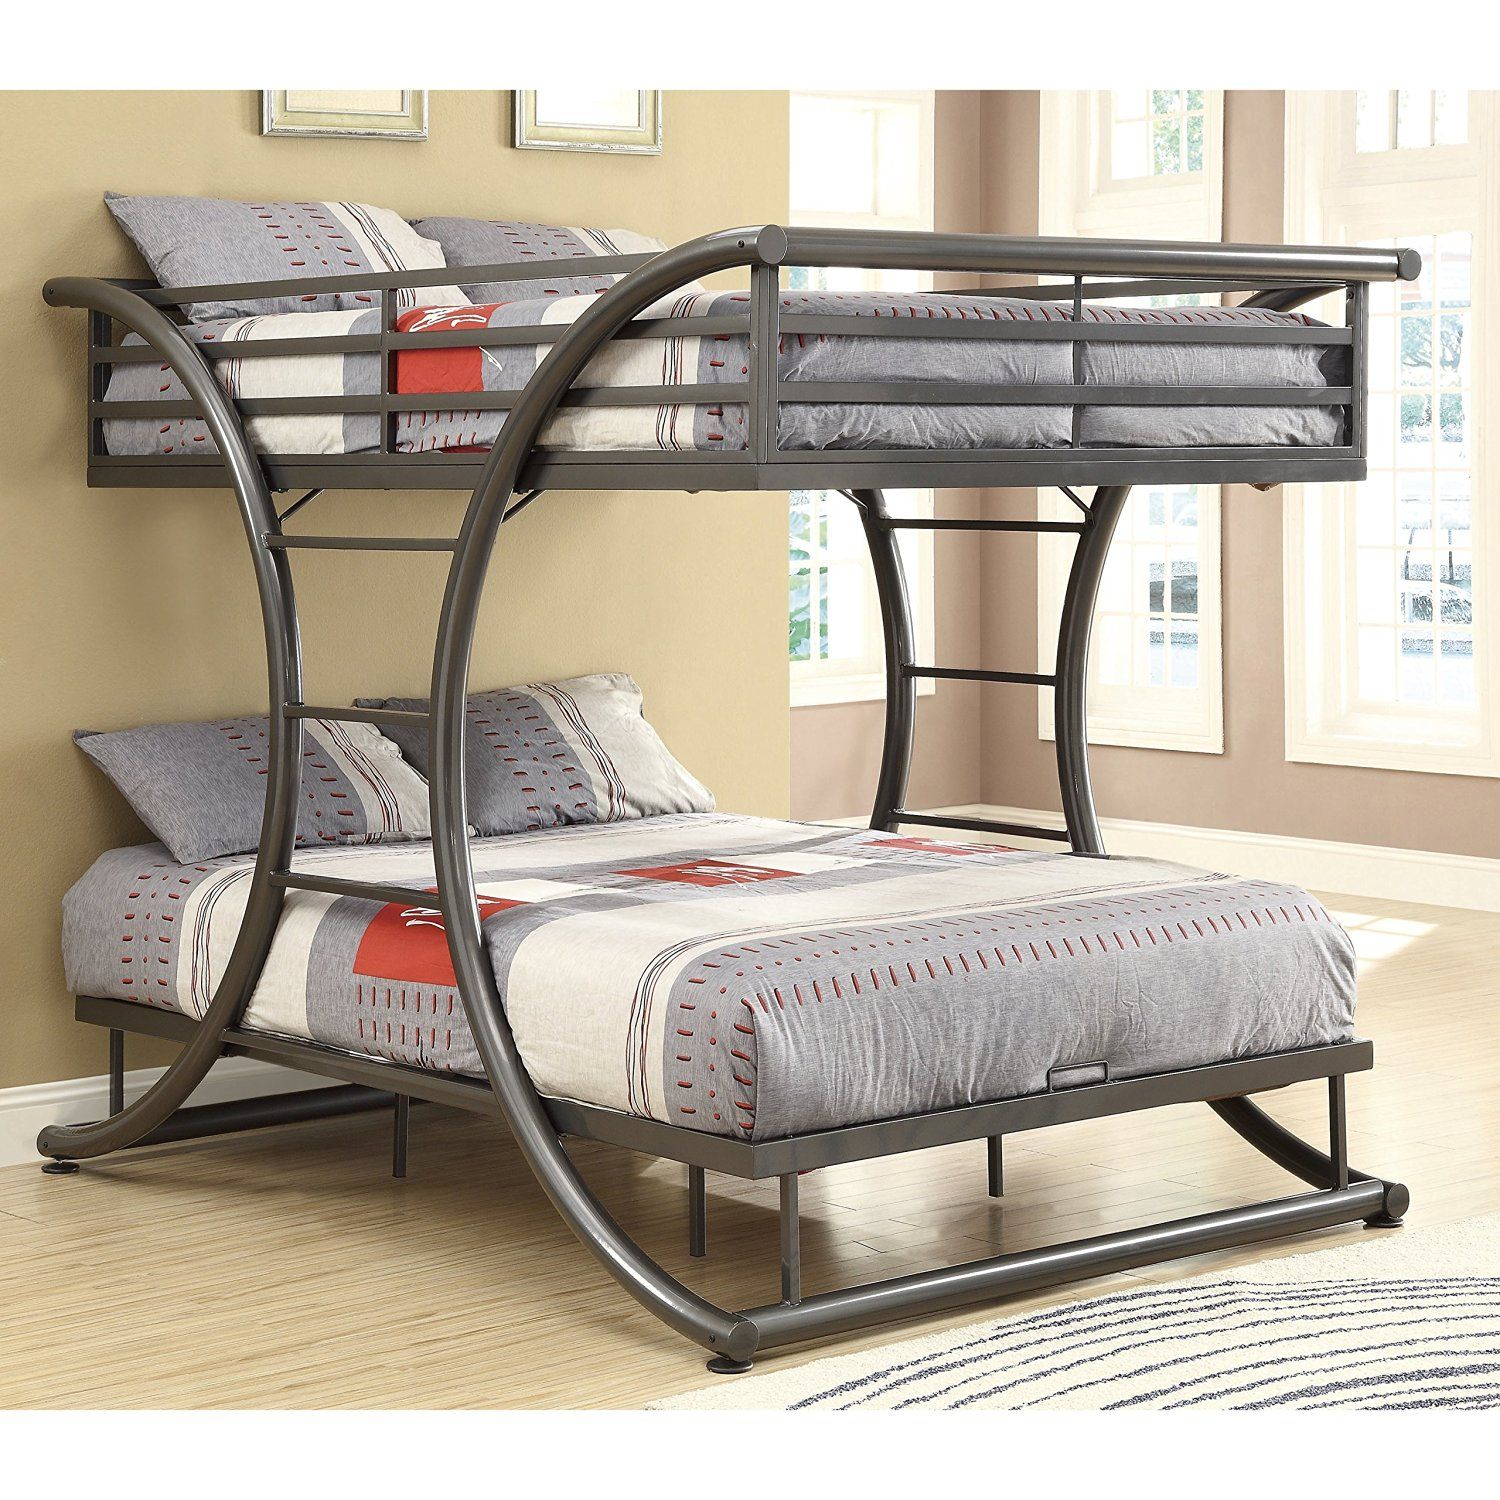 Amazon.com: Coaster Home Furnishings 460078 Bunk Bed, Gunmetal ...